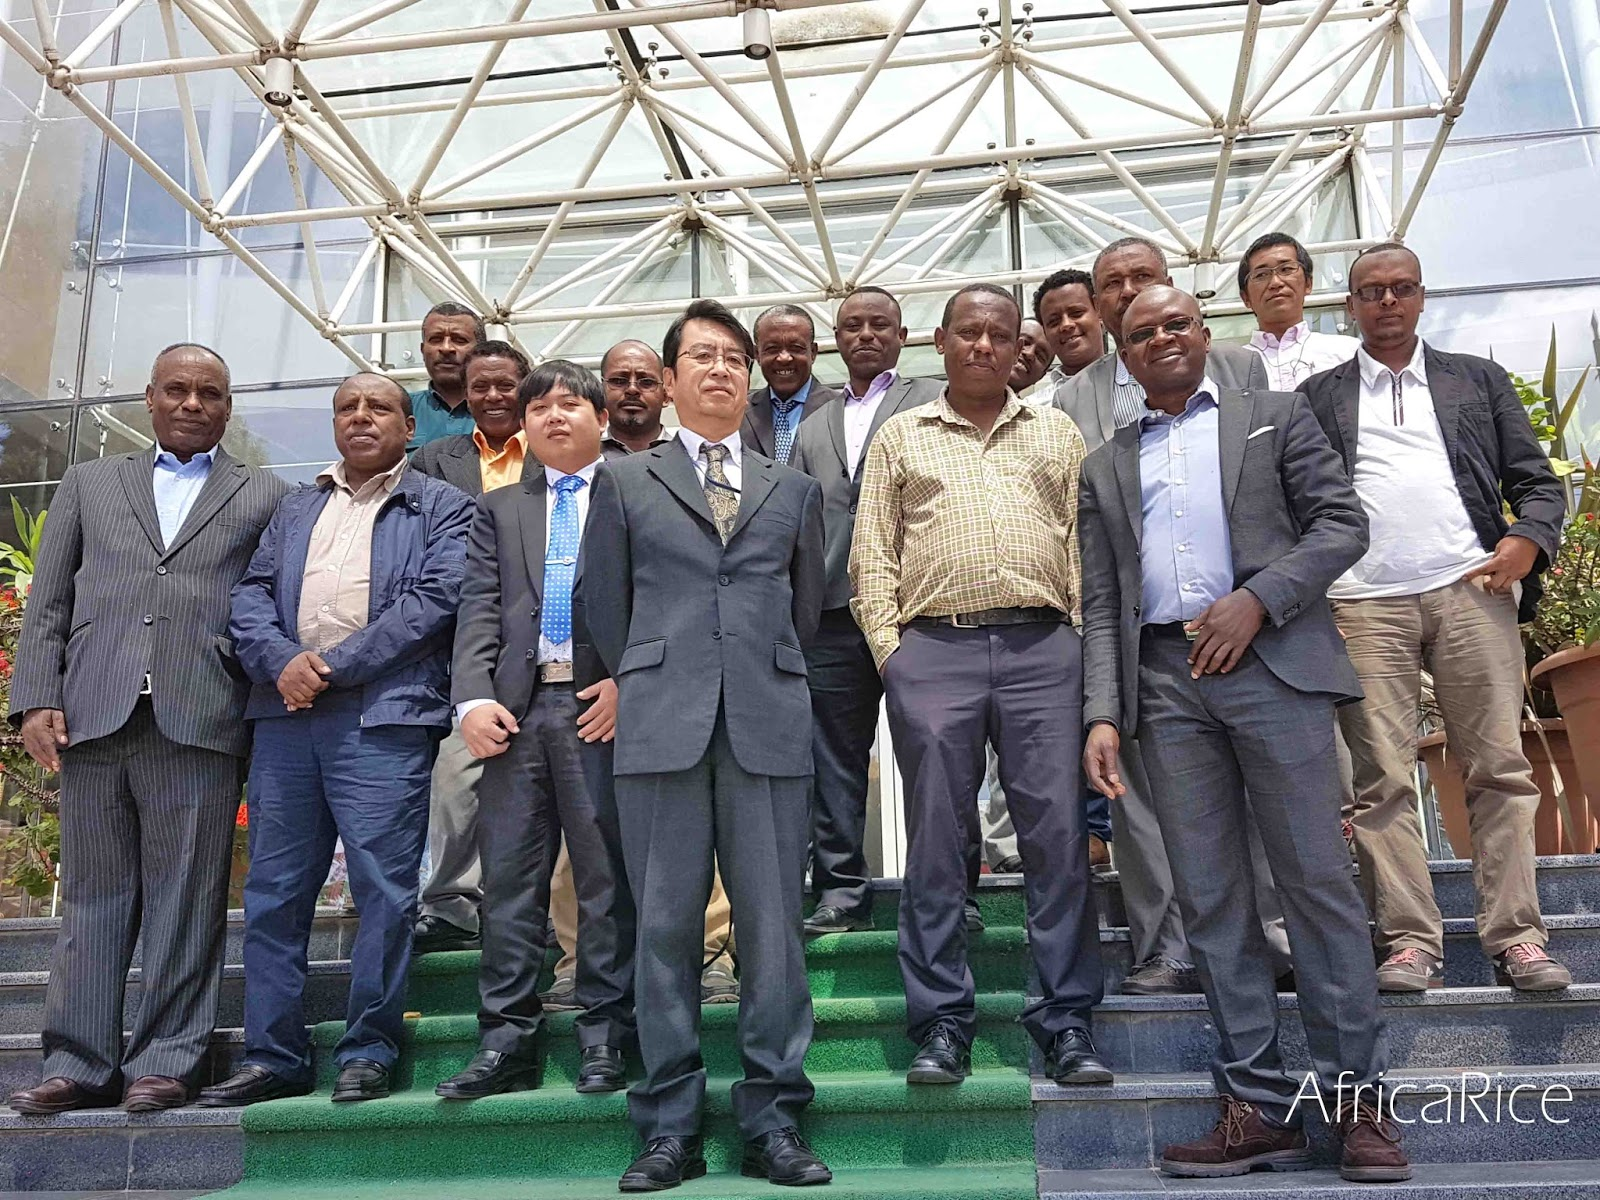 AfricaRice News blog: AfricaRice and FAO train national